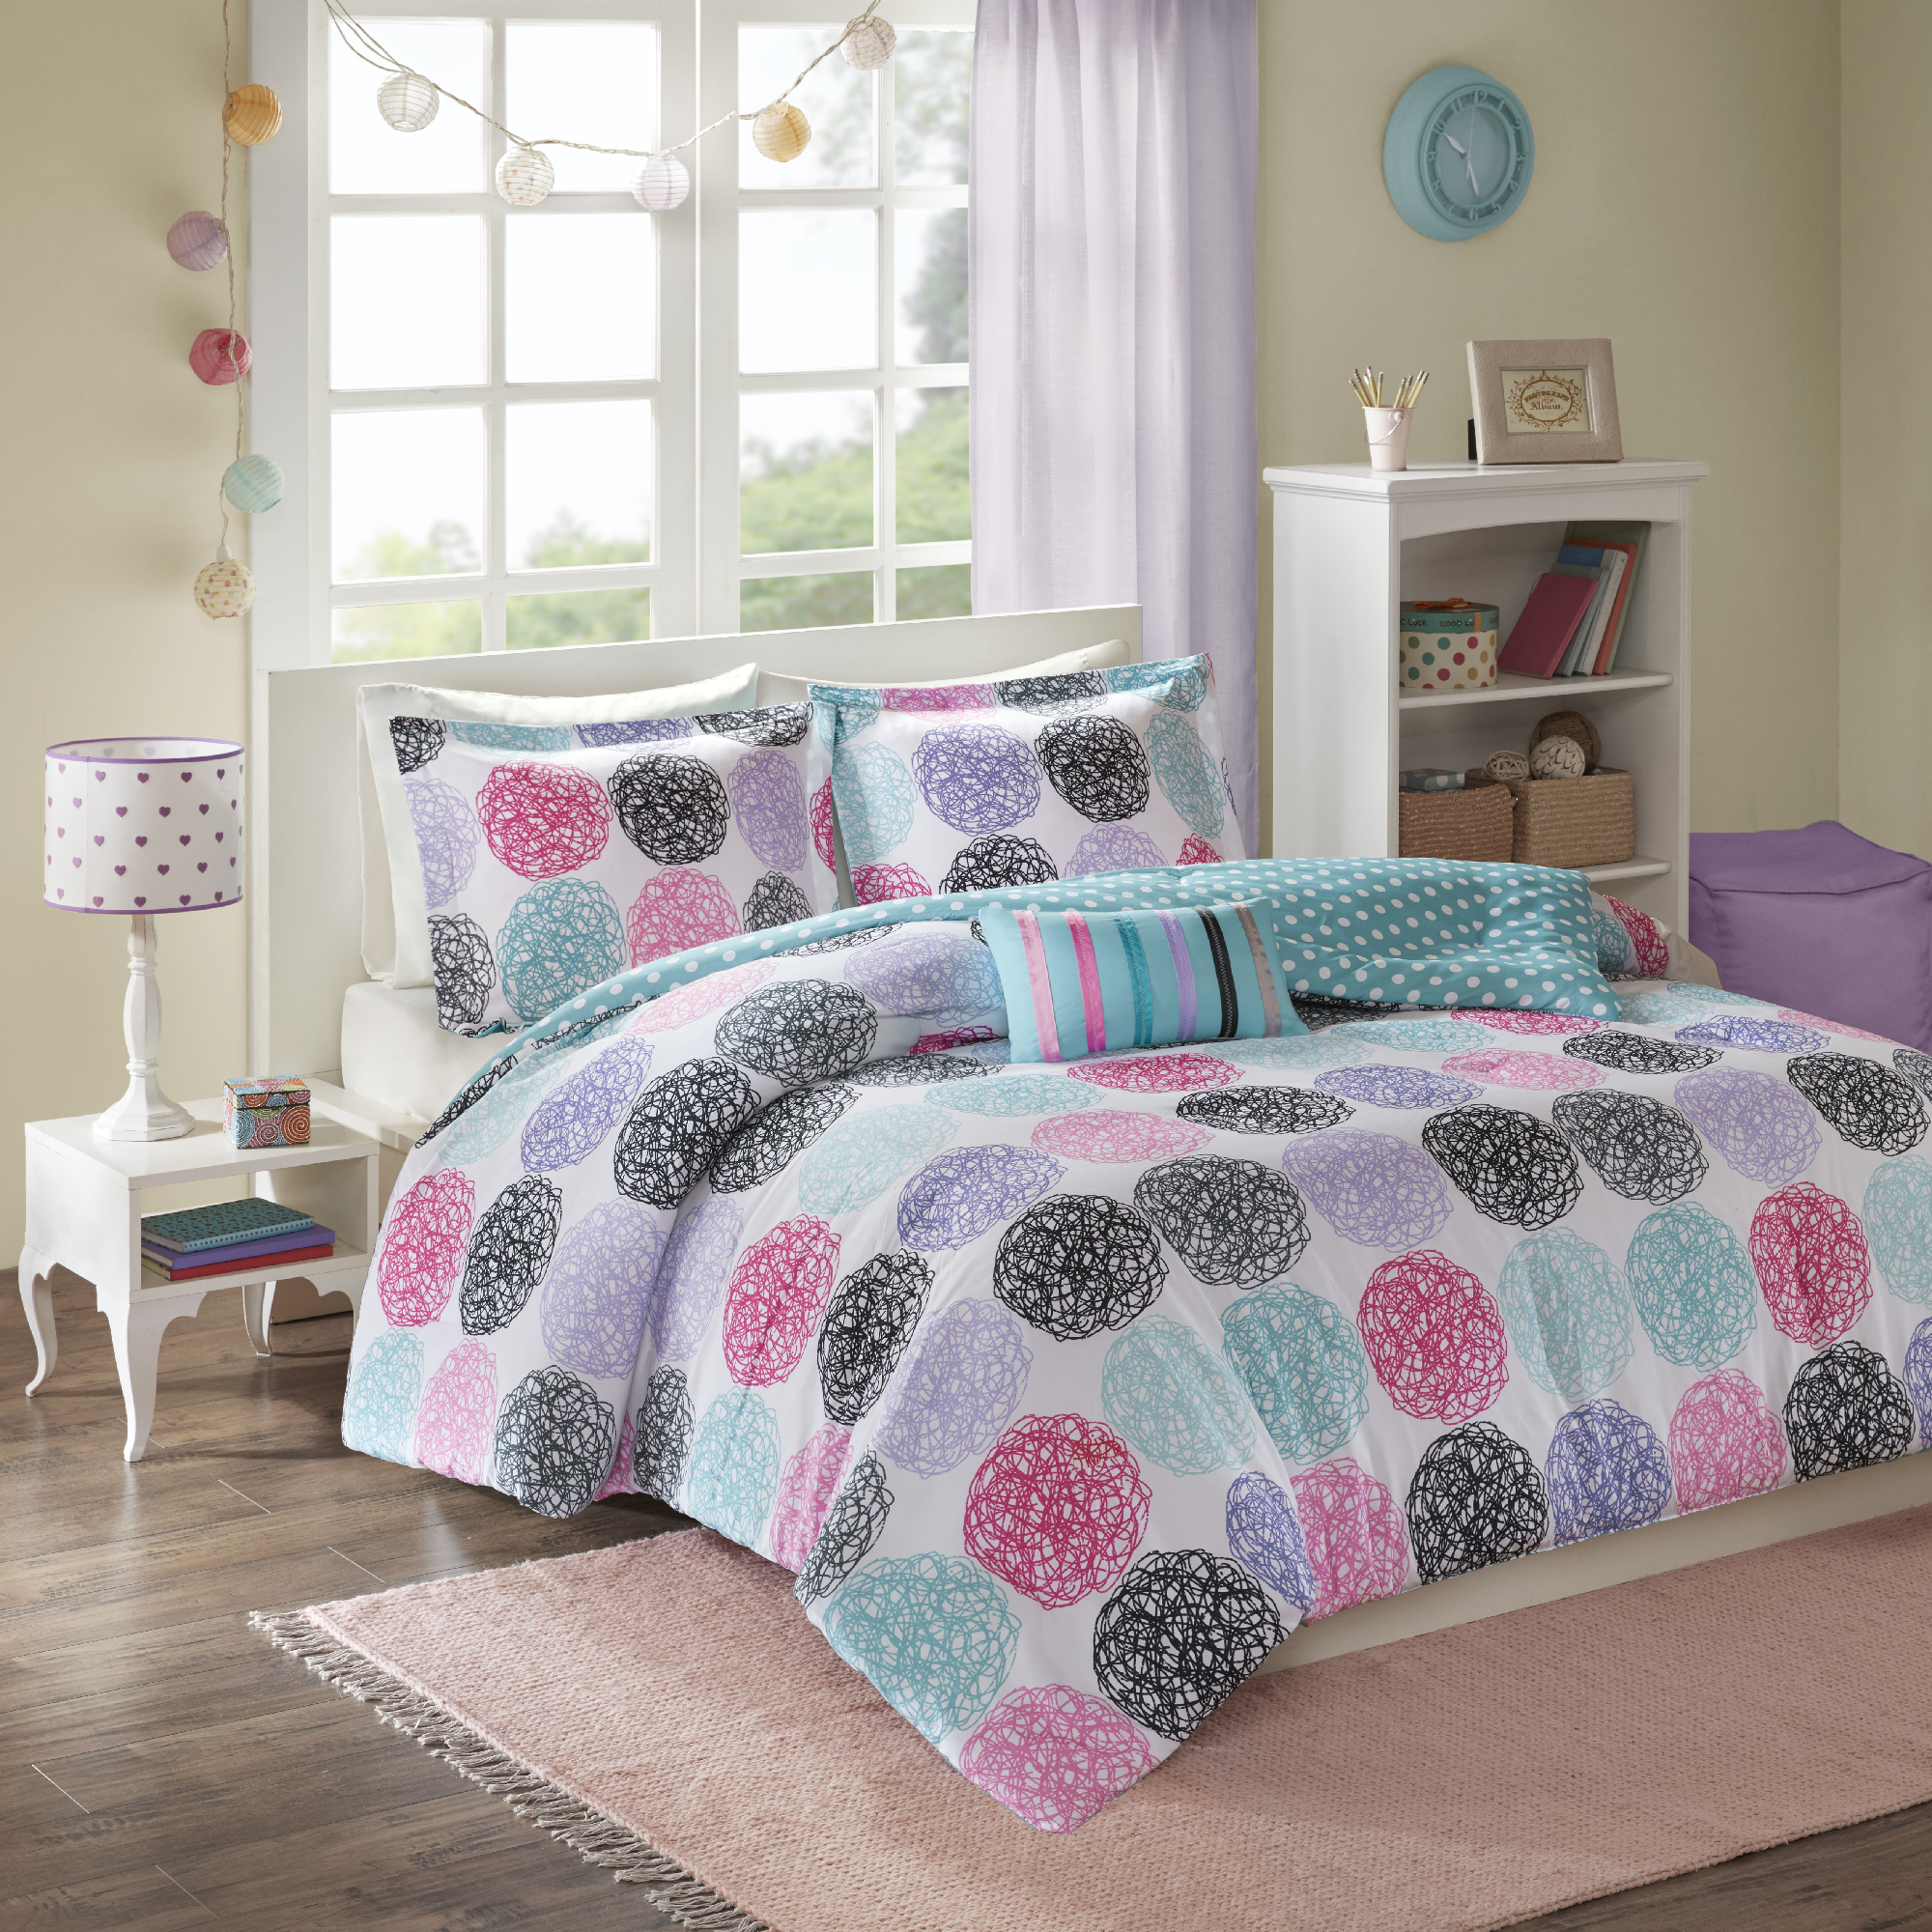 Home Essence Apartment Brittany Bedding Comforter Set